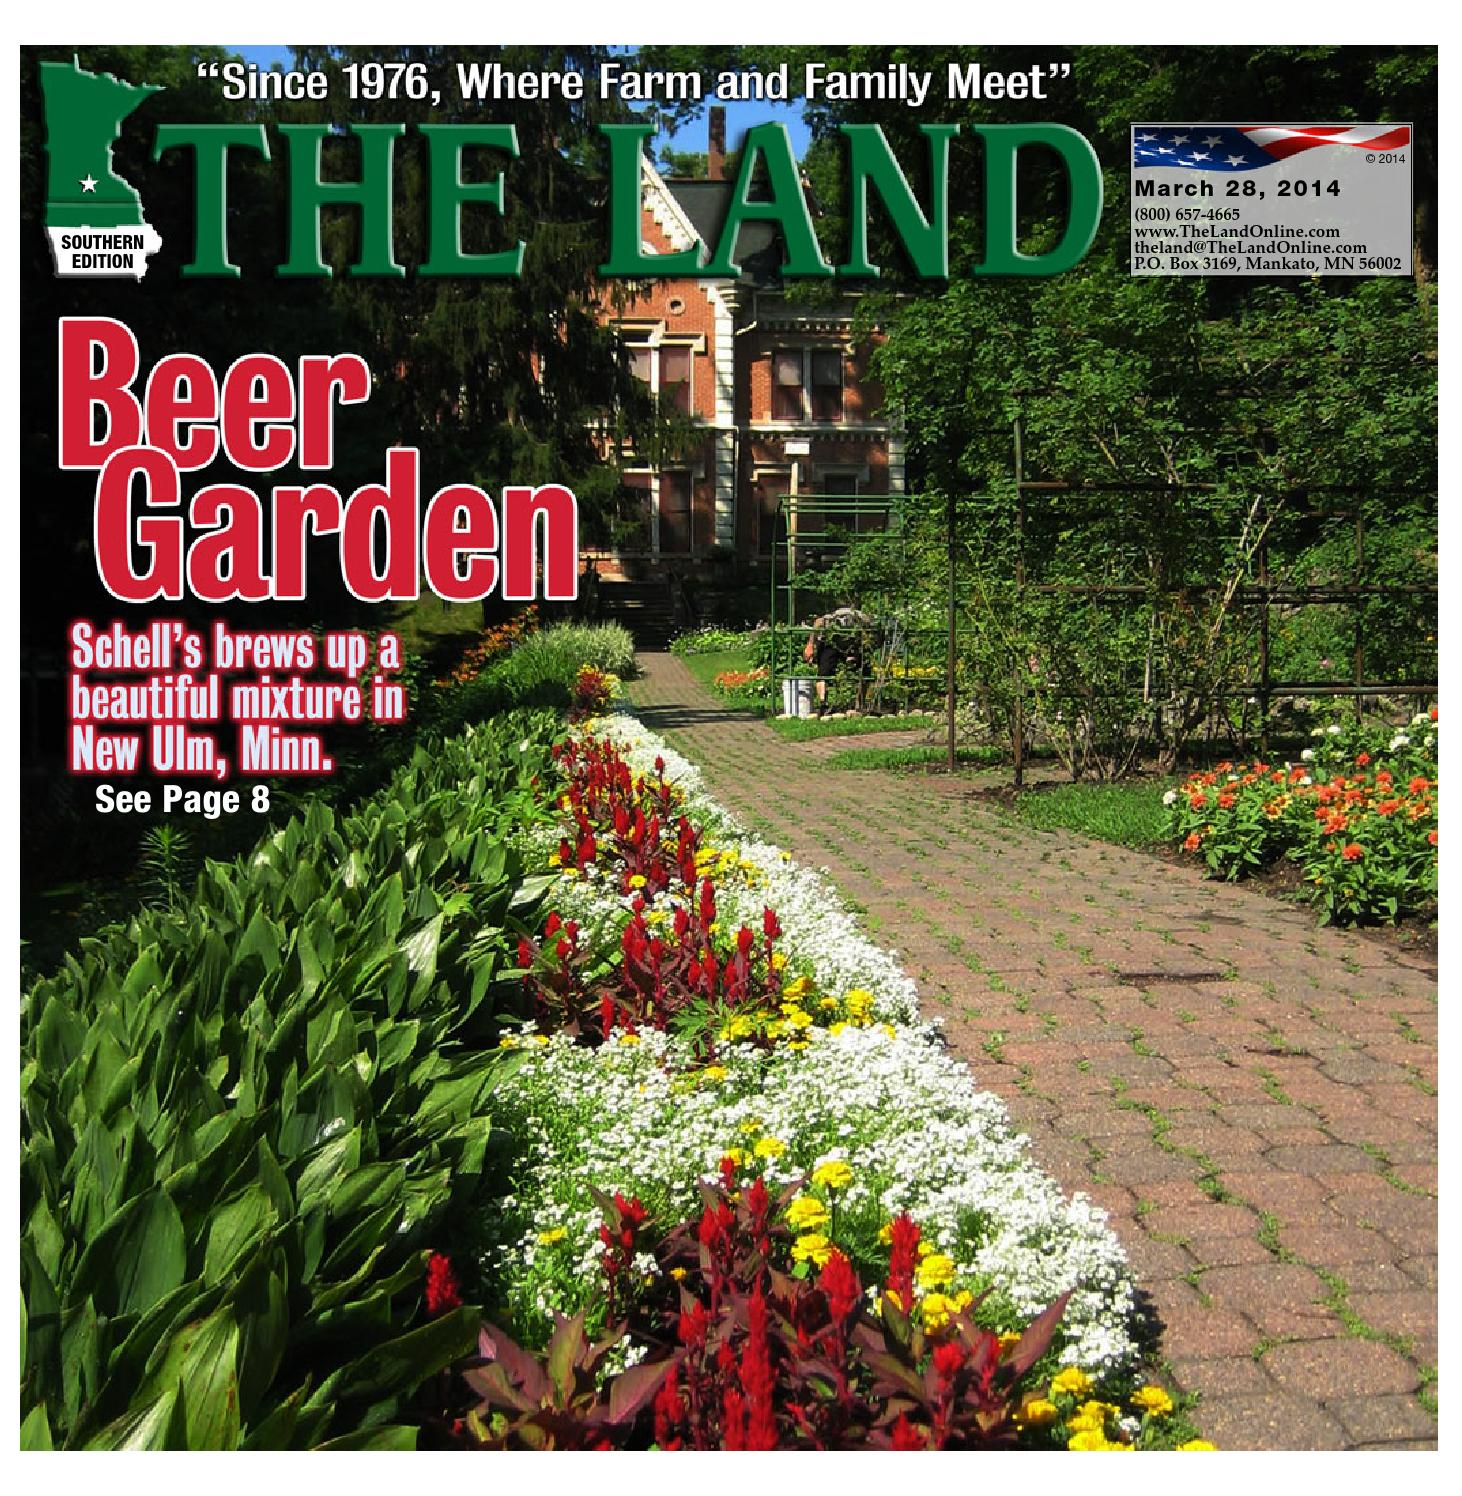 THE LAND Mar 28 2014 Southern Edition by The Land issuu